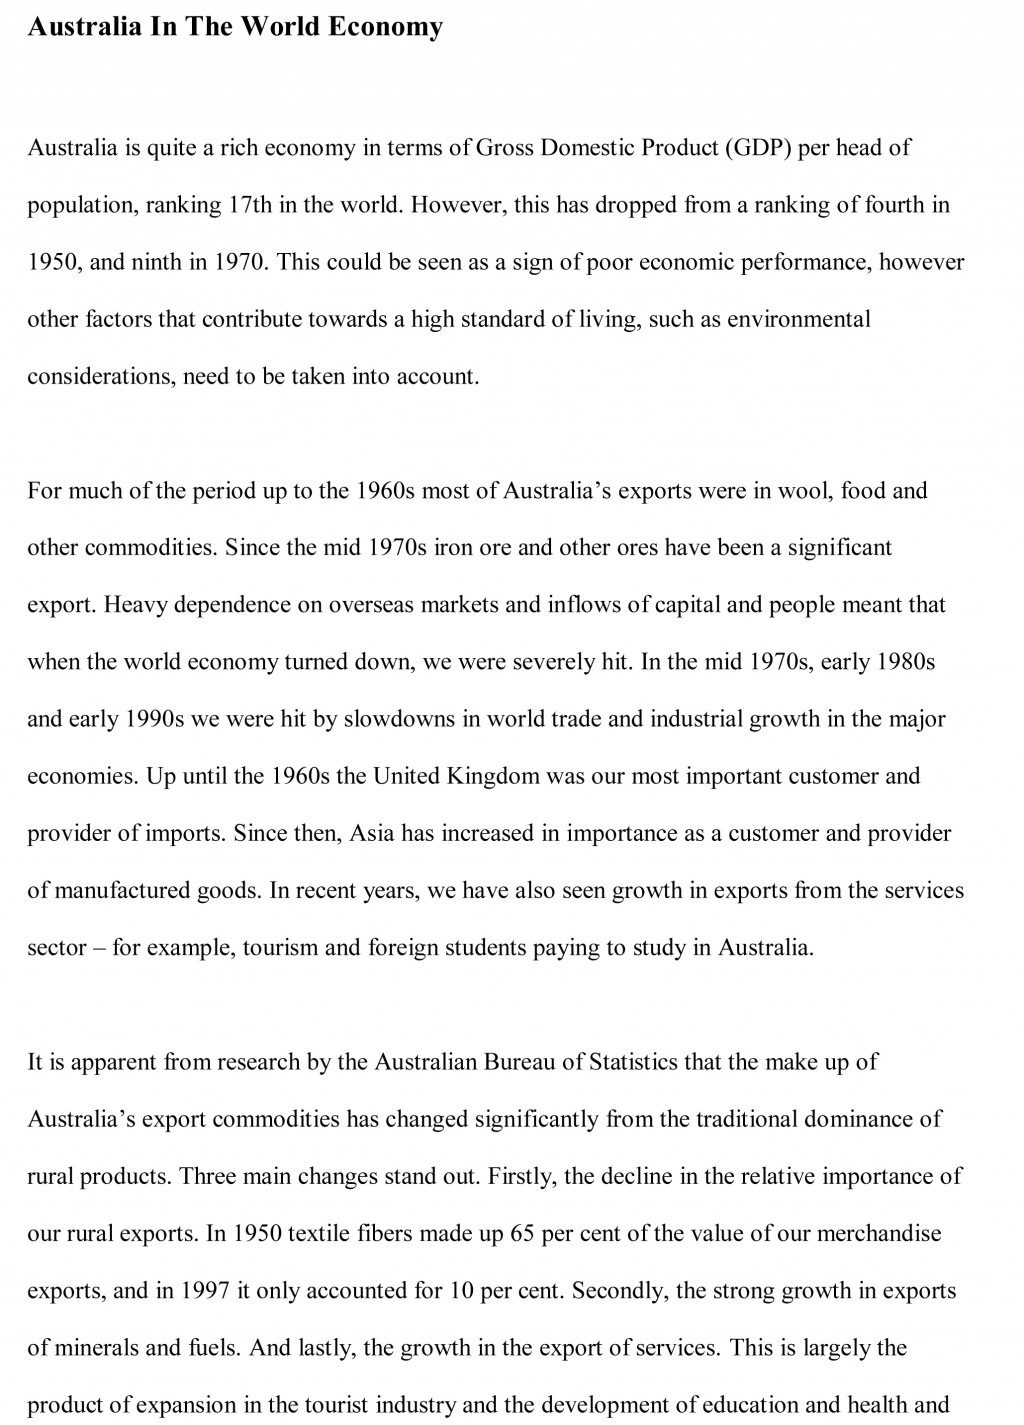 002 Marvelous Essay Example Good Introduction Examples For Essays Template Economics Free Sample Amistad Structure Writing Frightening Discount Code Uk English Large